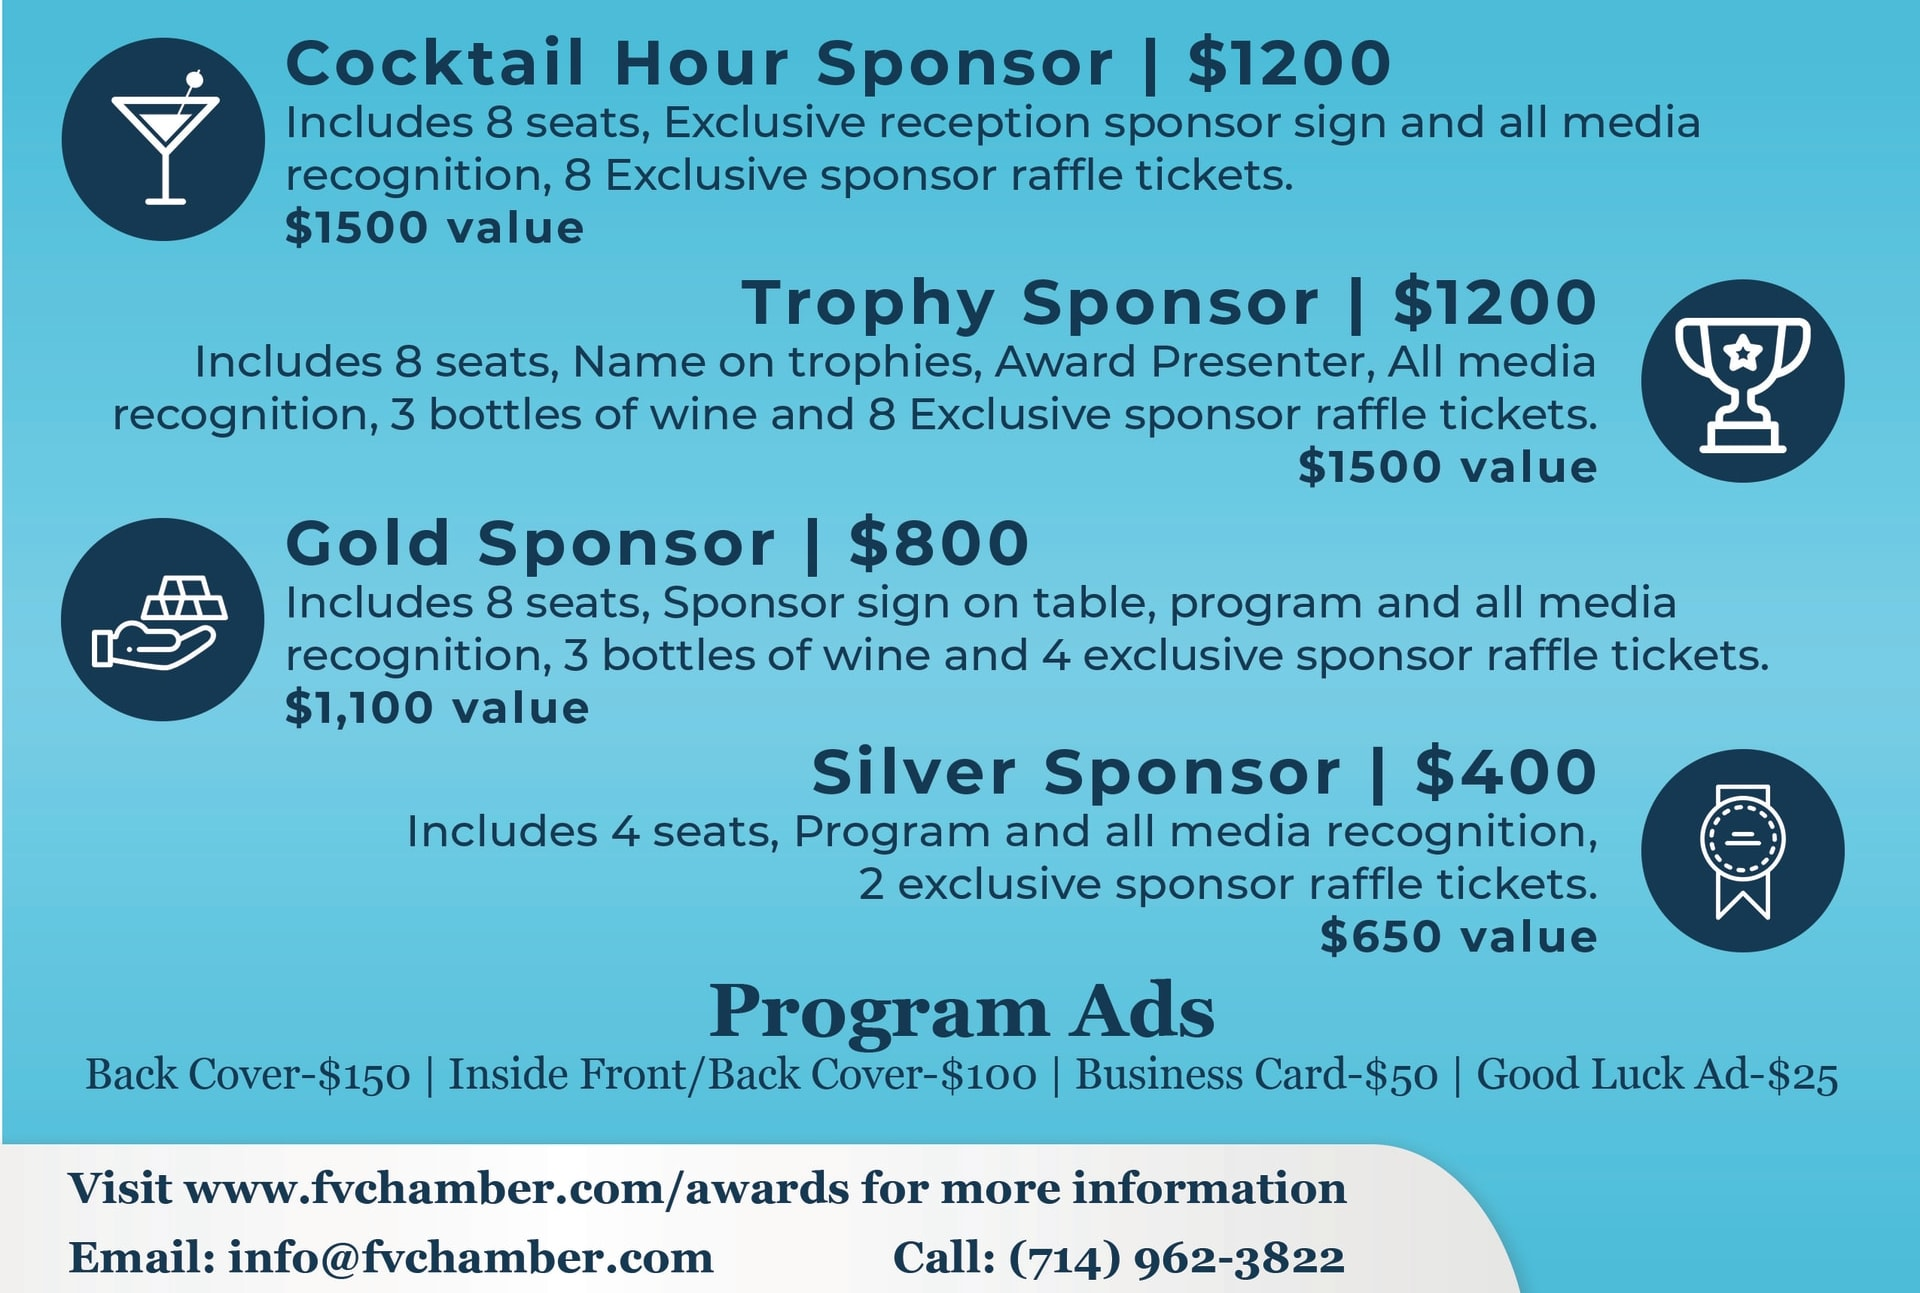 Awards-Sponsorship-banner.jpg